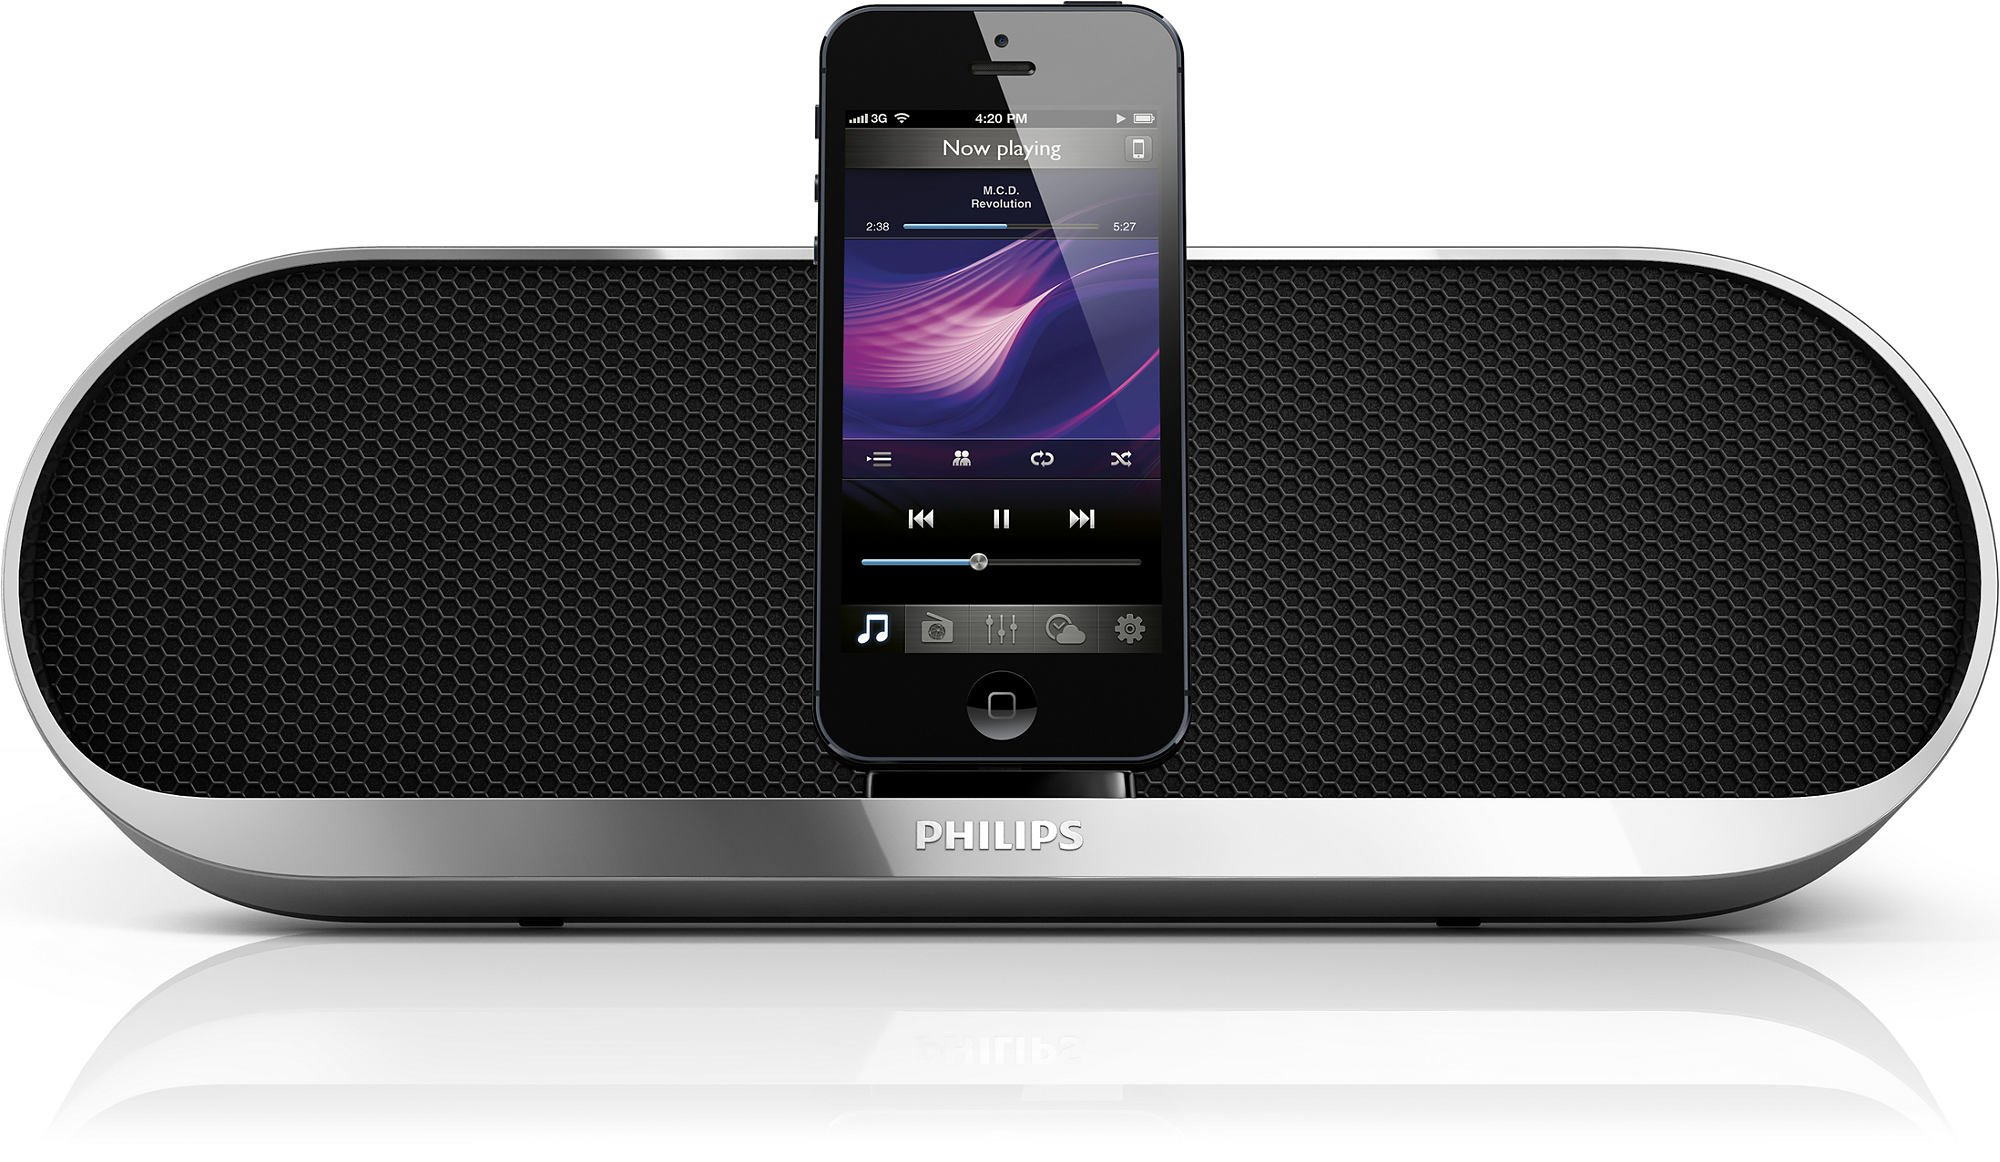 Philips DS7580 Charging Speaker Dock for iPhone 5 with Lightning Dock and 3.5mm Audio Input by PHILIPS